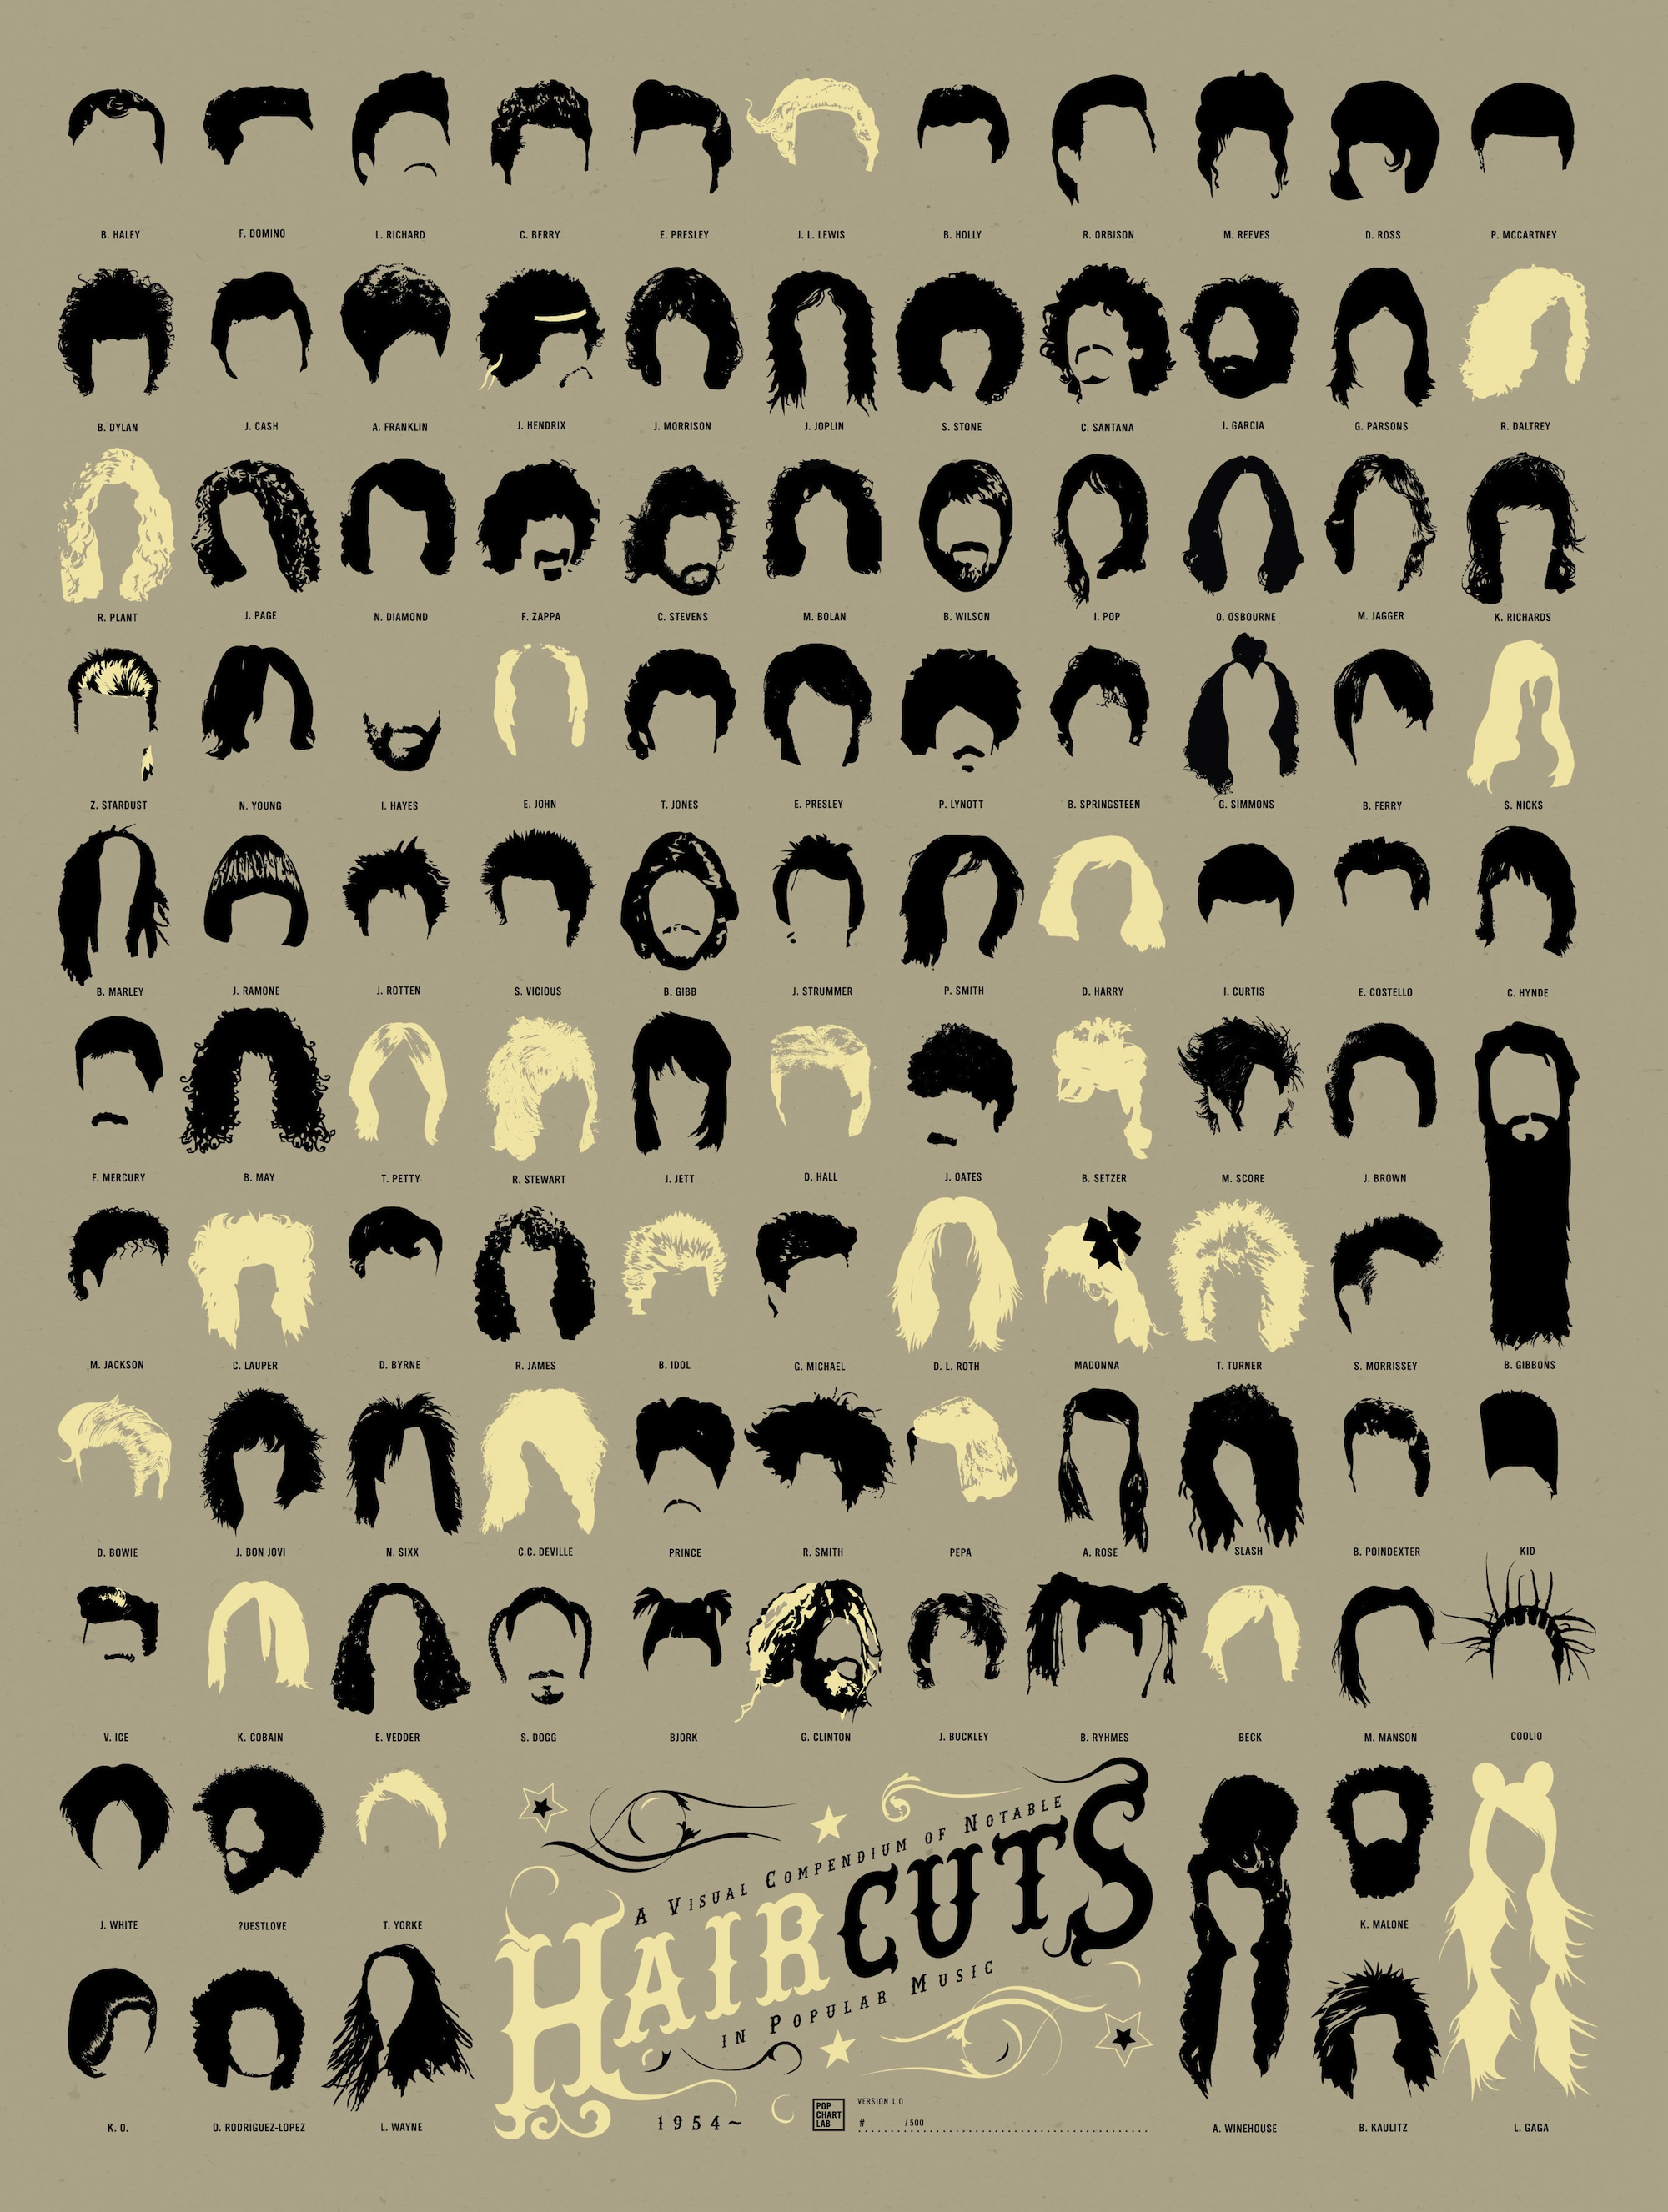 Infographic of the day 108 of the best haircuts in music history